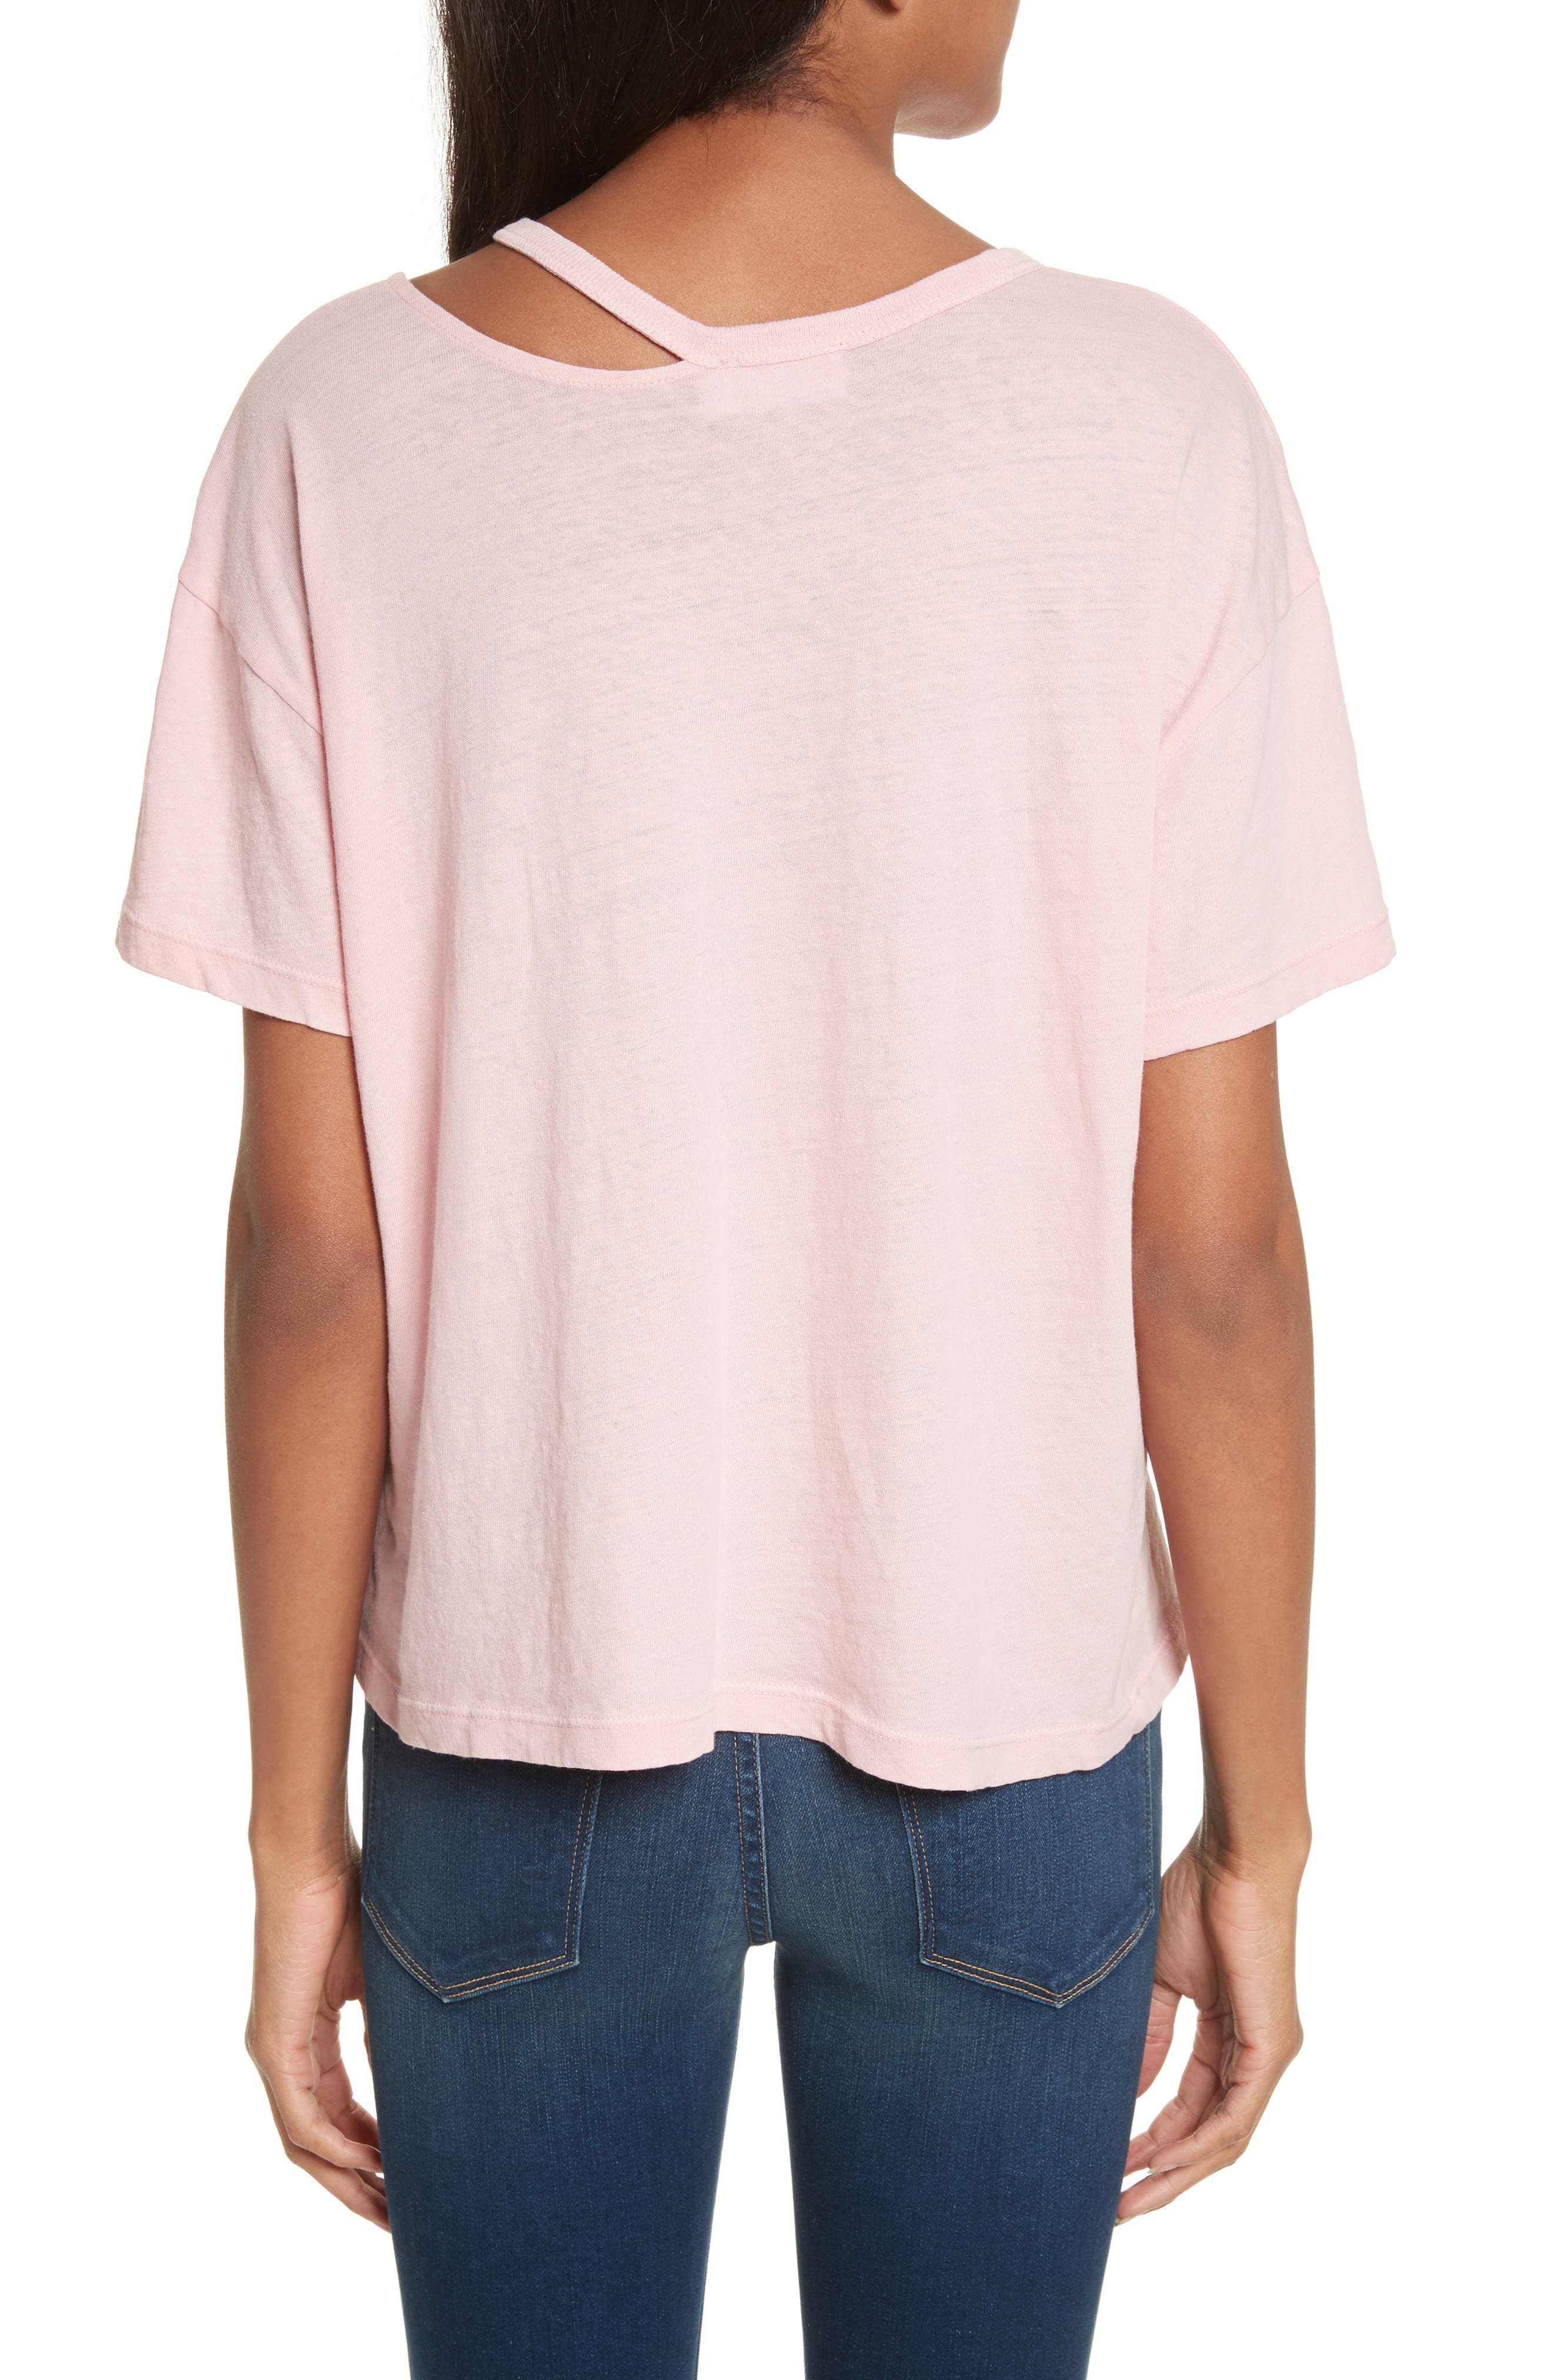 Chopped Crew Tee,                             Alternate thumbnail 2, color,                             Faded Light Pink Exclusive